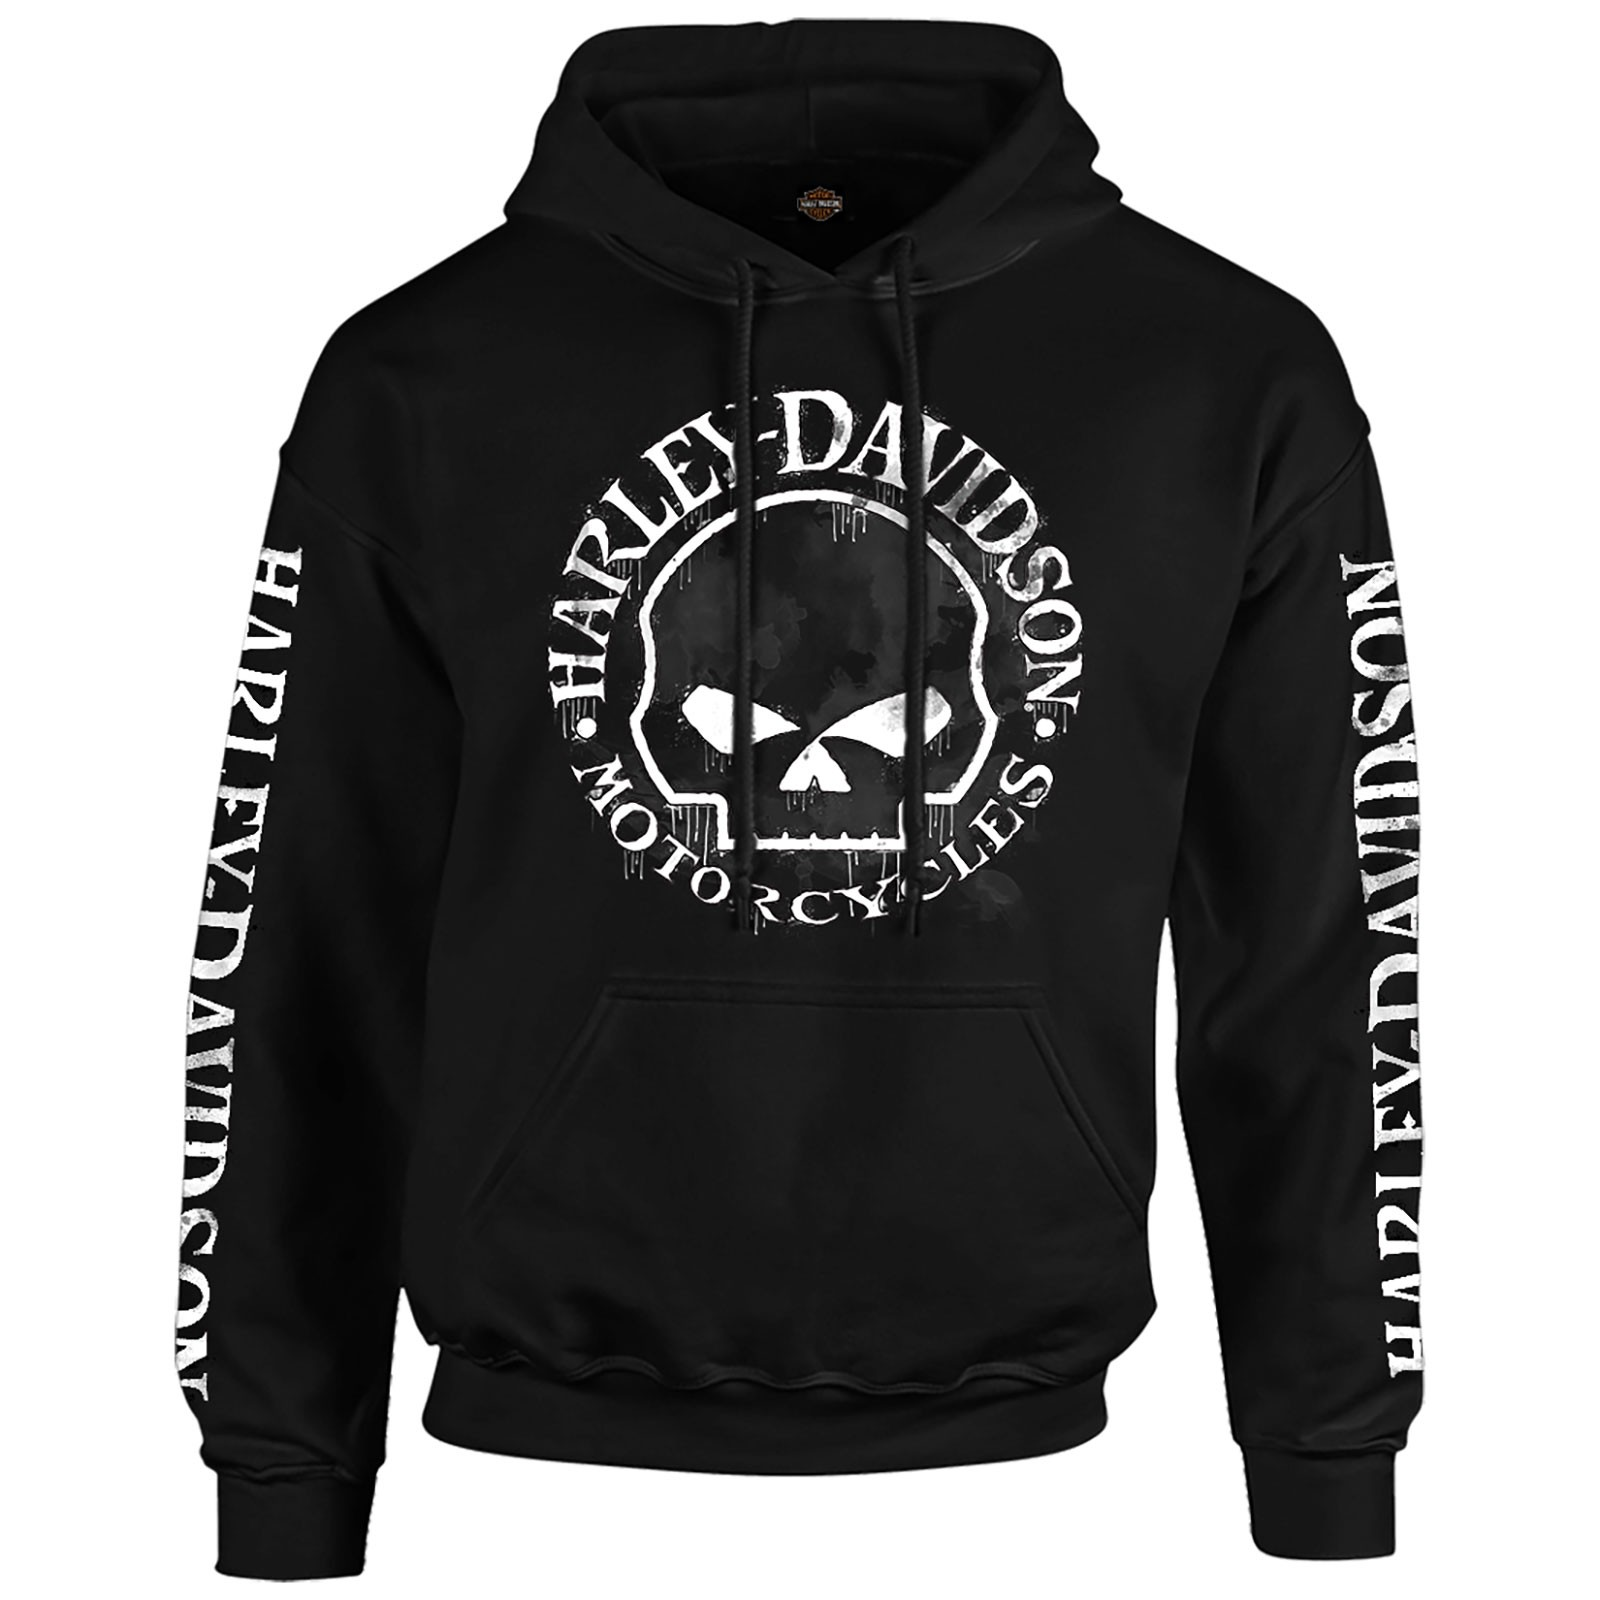 Men's Black Skull Graphic Hooded Pullover Sweatshirt - Handmade Willie | Overseas Tour